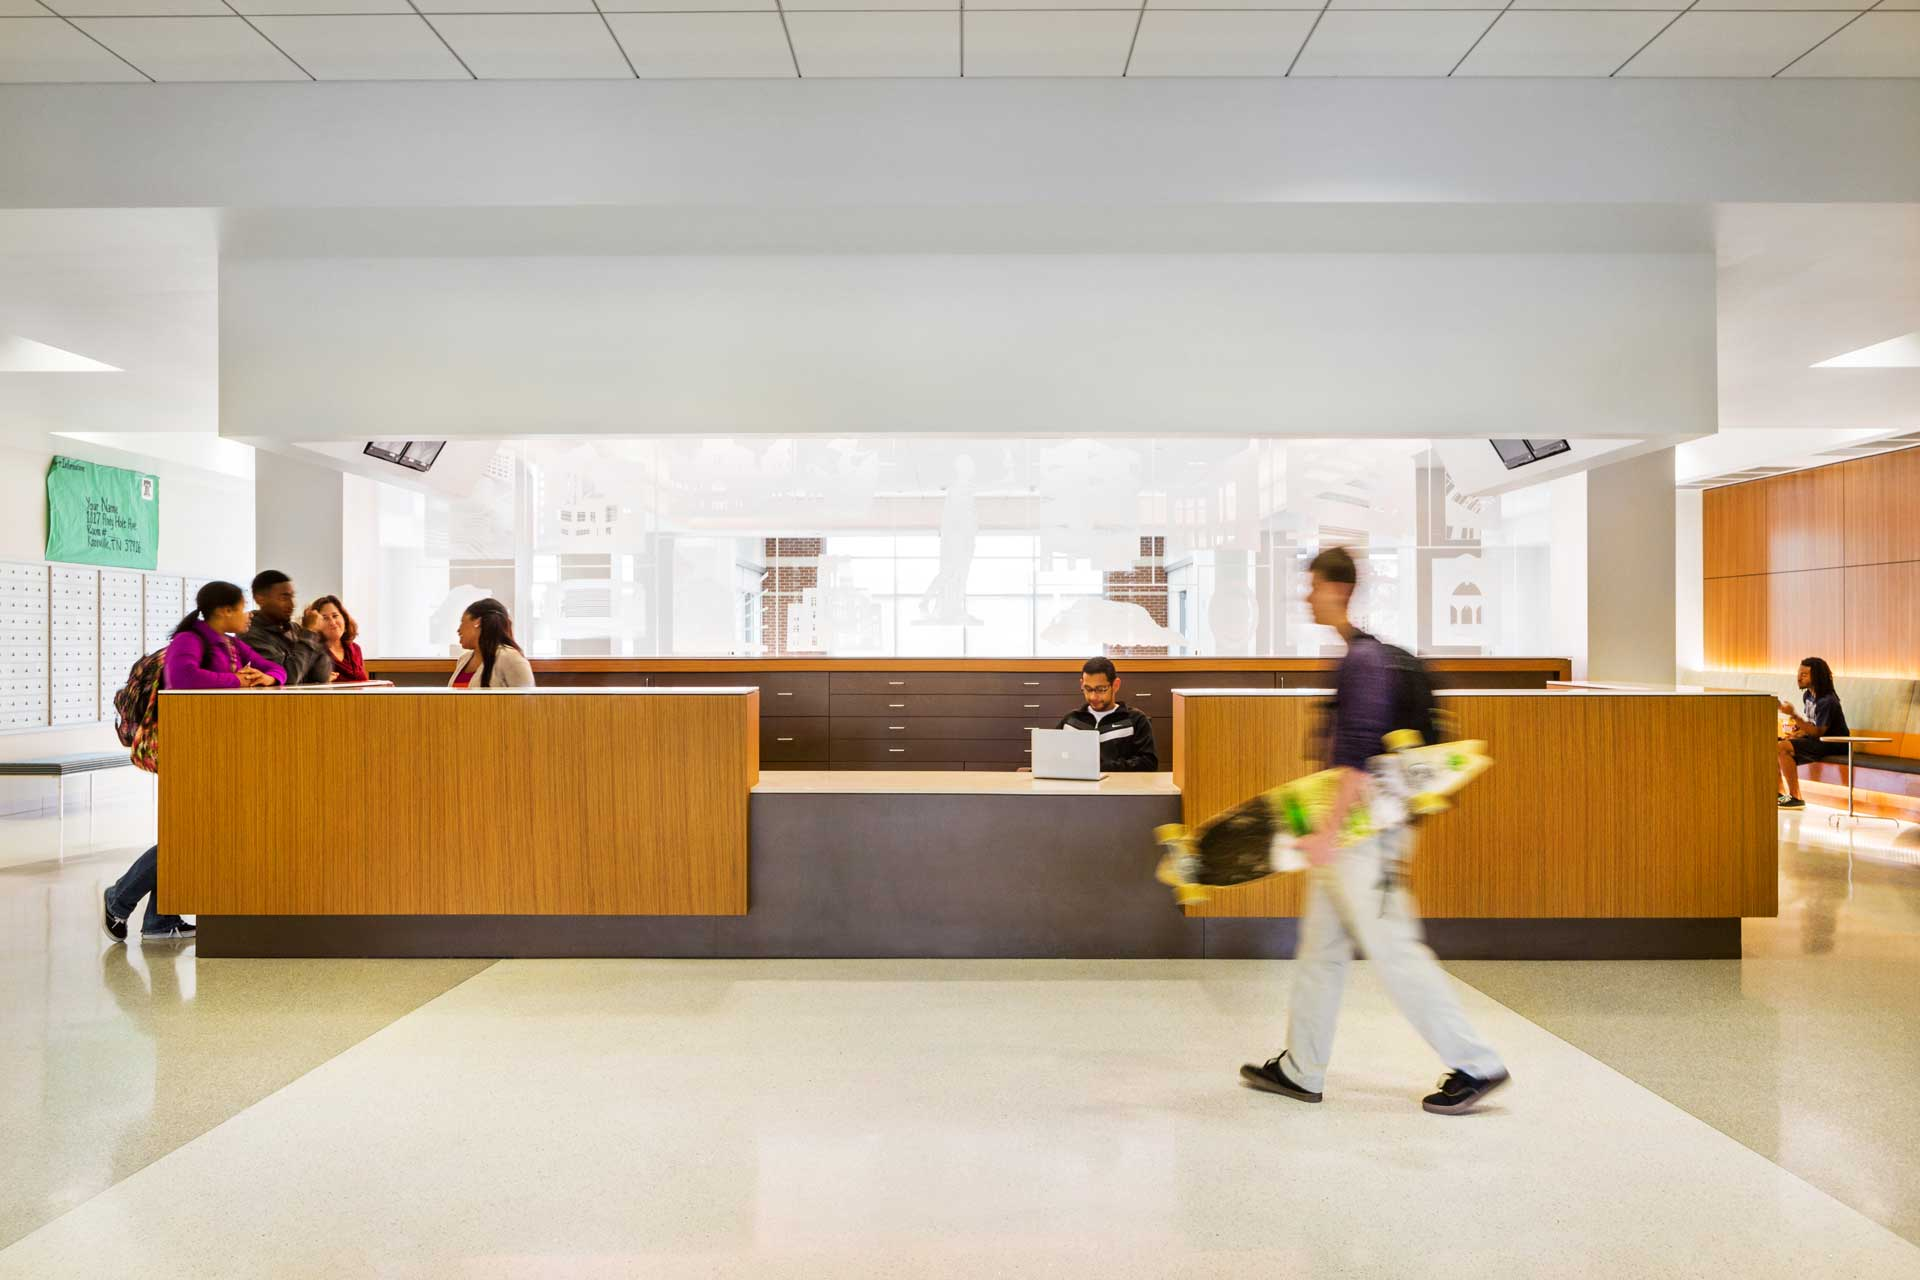 University_of_Tennessee_Interiors_Lauderdale_Design_Group_dormitory